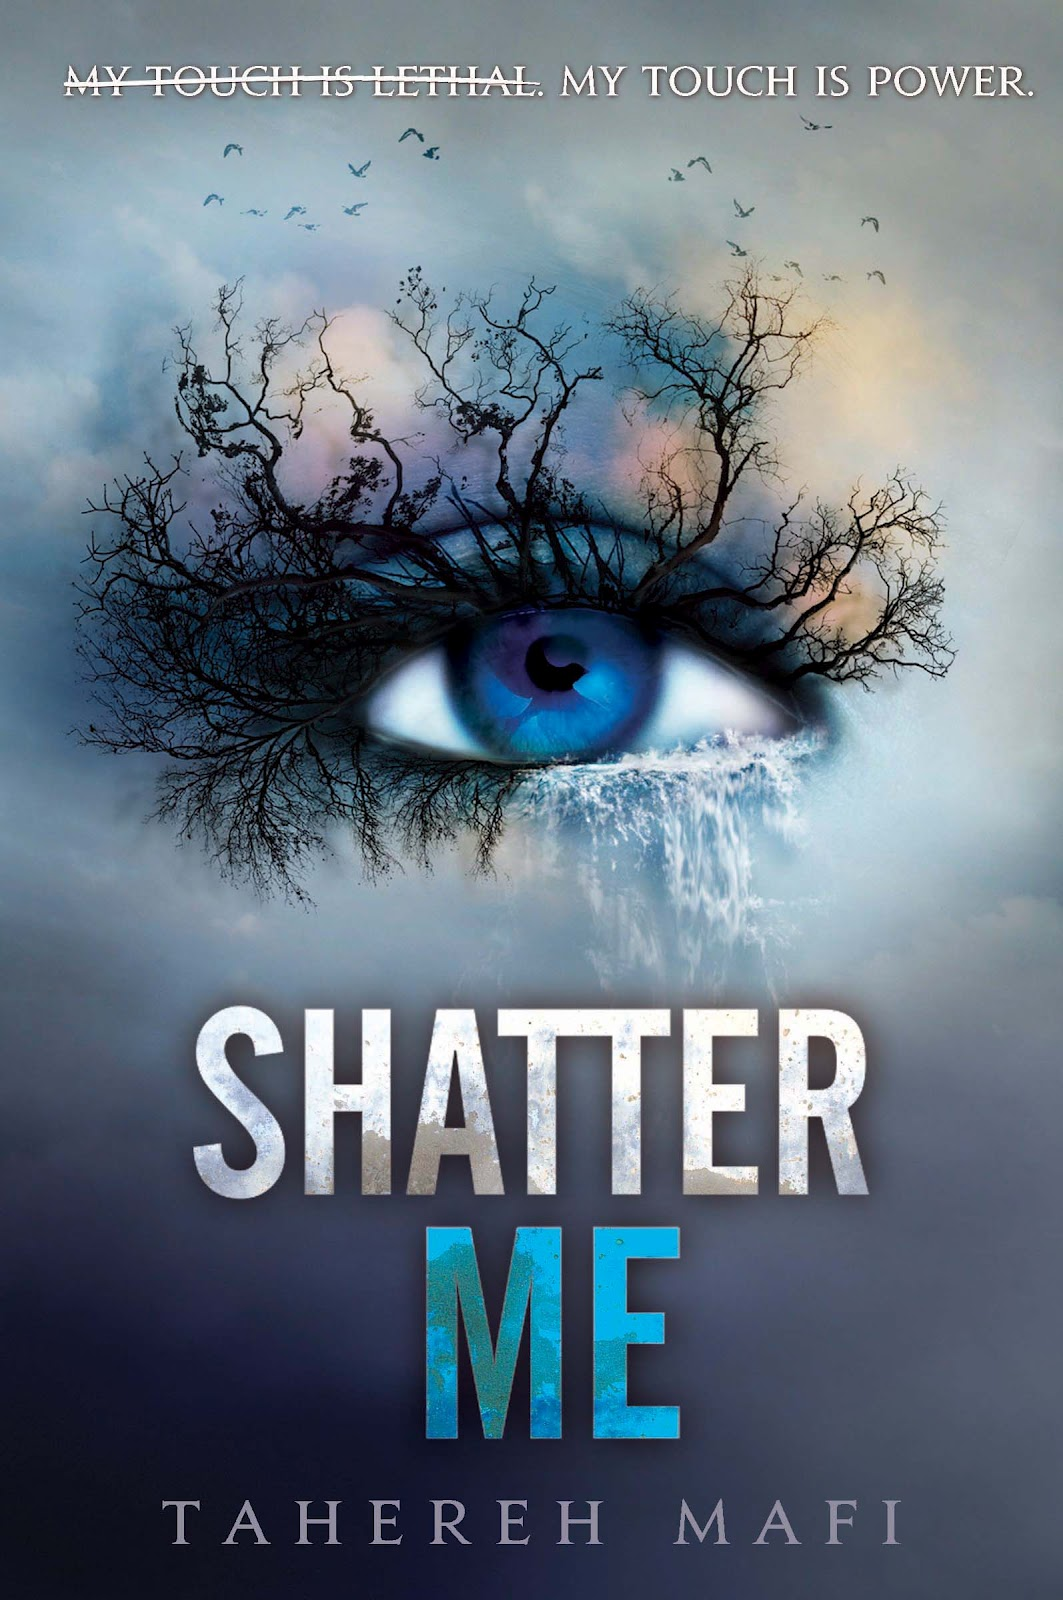 Book Cover Photography Near Me ~ Shatter me series images new book cover hd